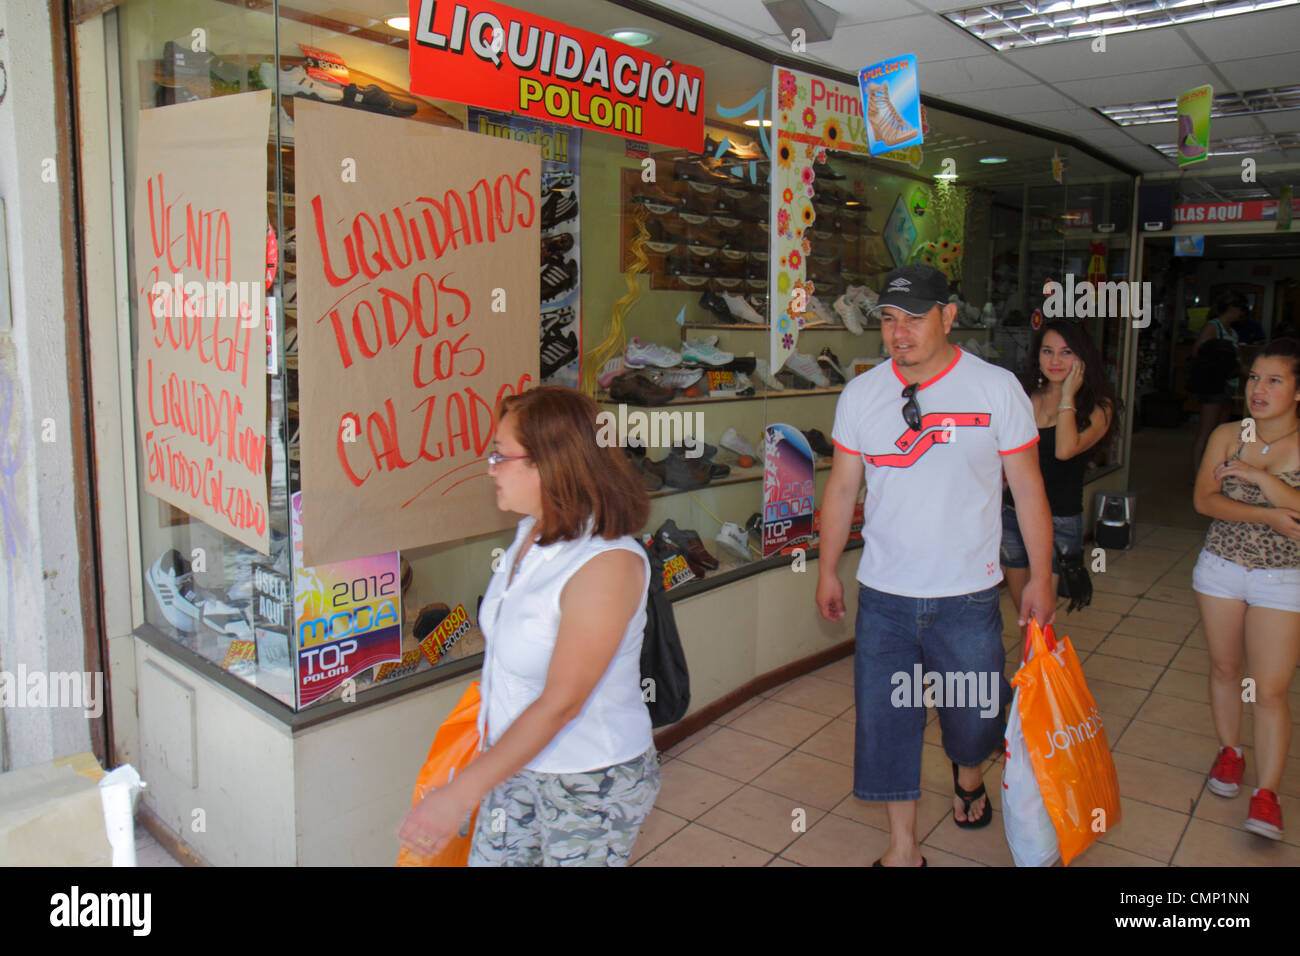 9db00432a Chile Arica Paseo Peatonal 21 de Mayo shopping shoe store ladies footwear  boutique window retail display sign sale discount Hisp